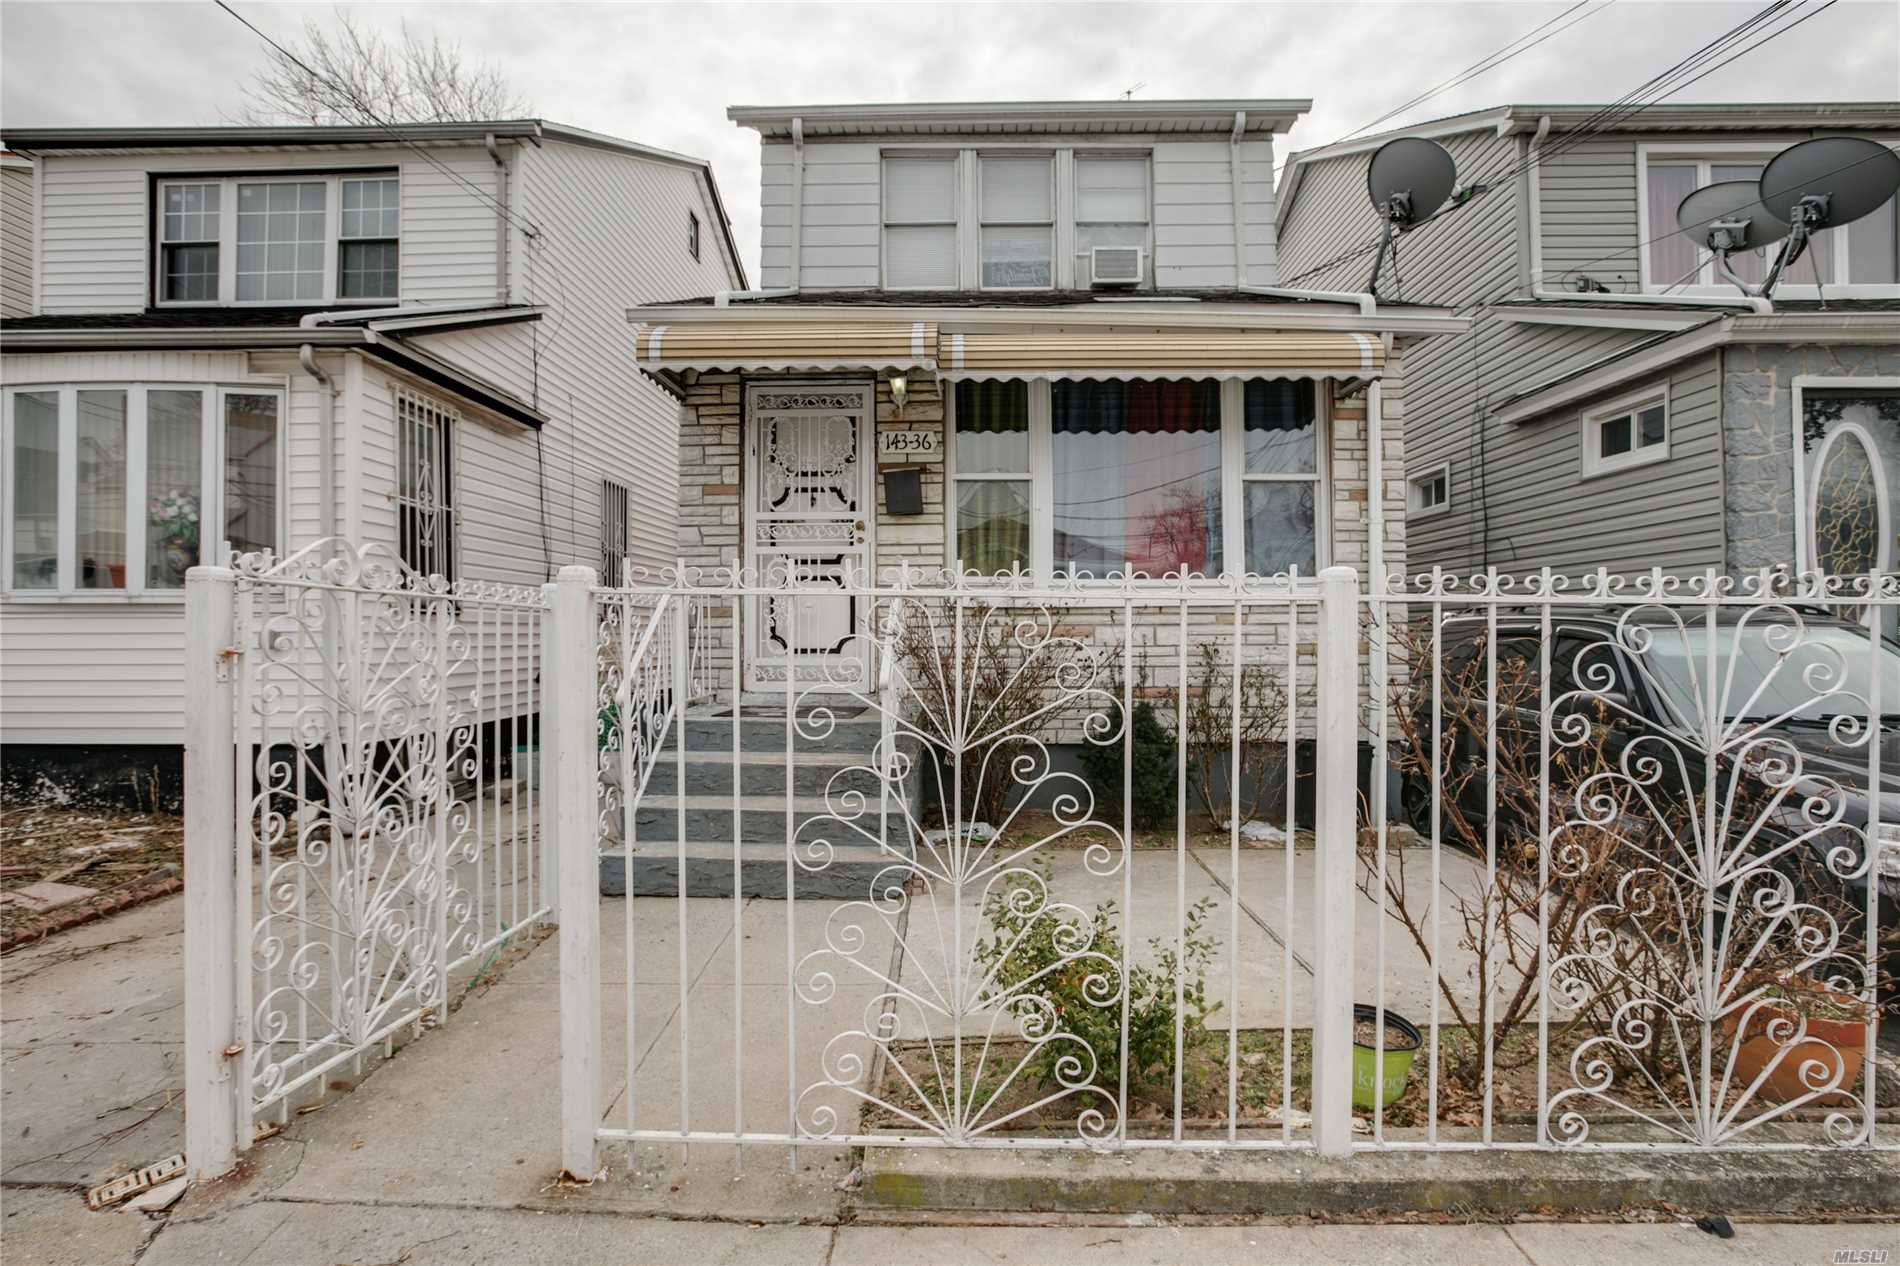 Photo of home for sale at 143-36 110th Ave, Jamaica NY